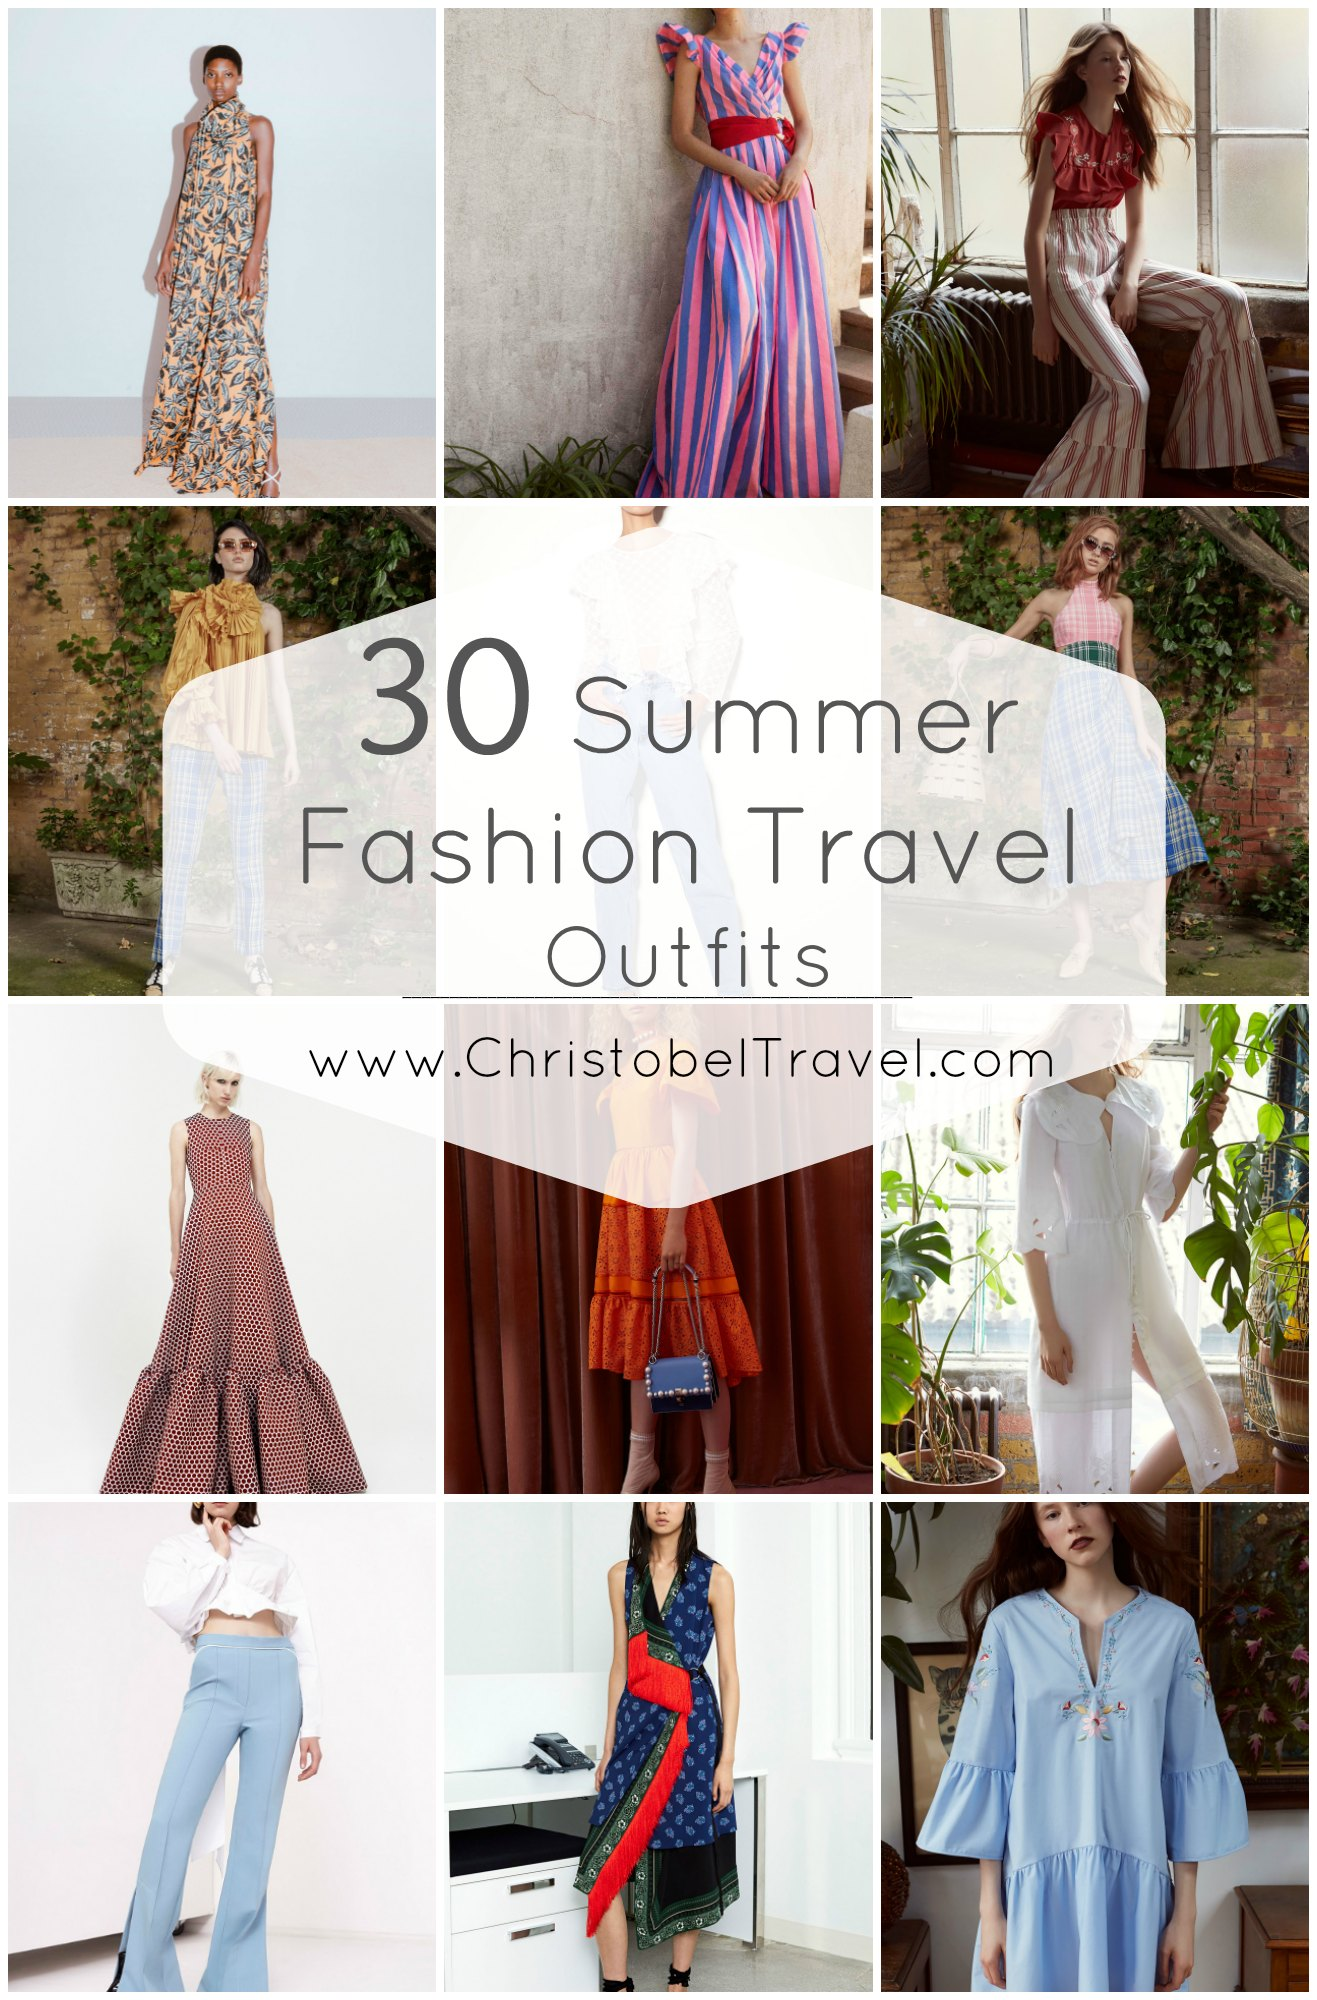 30 Summer Fashion Outfits To Inspire Your Travel Wardrobe